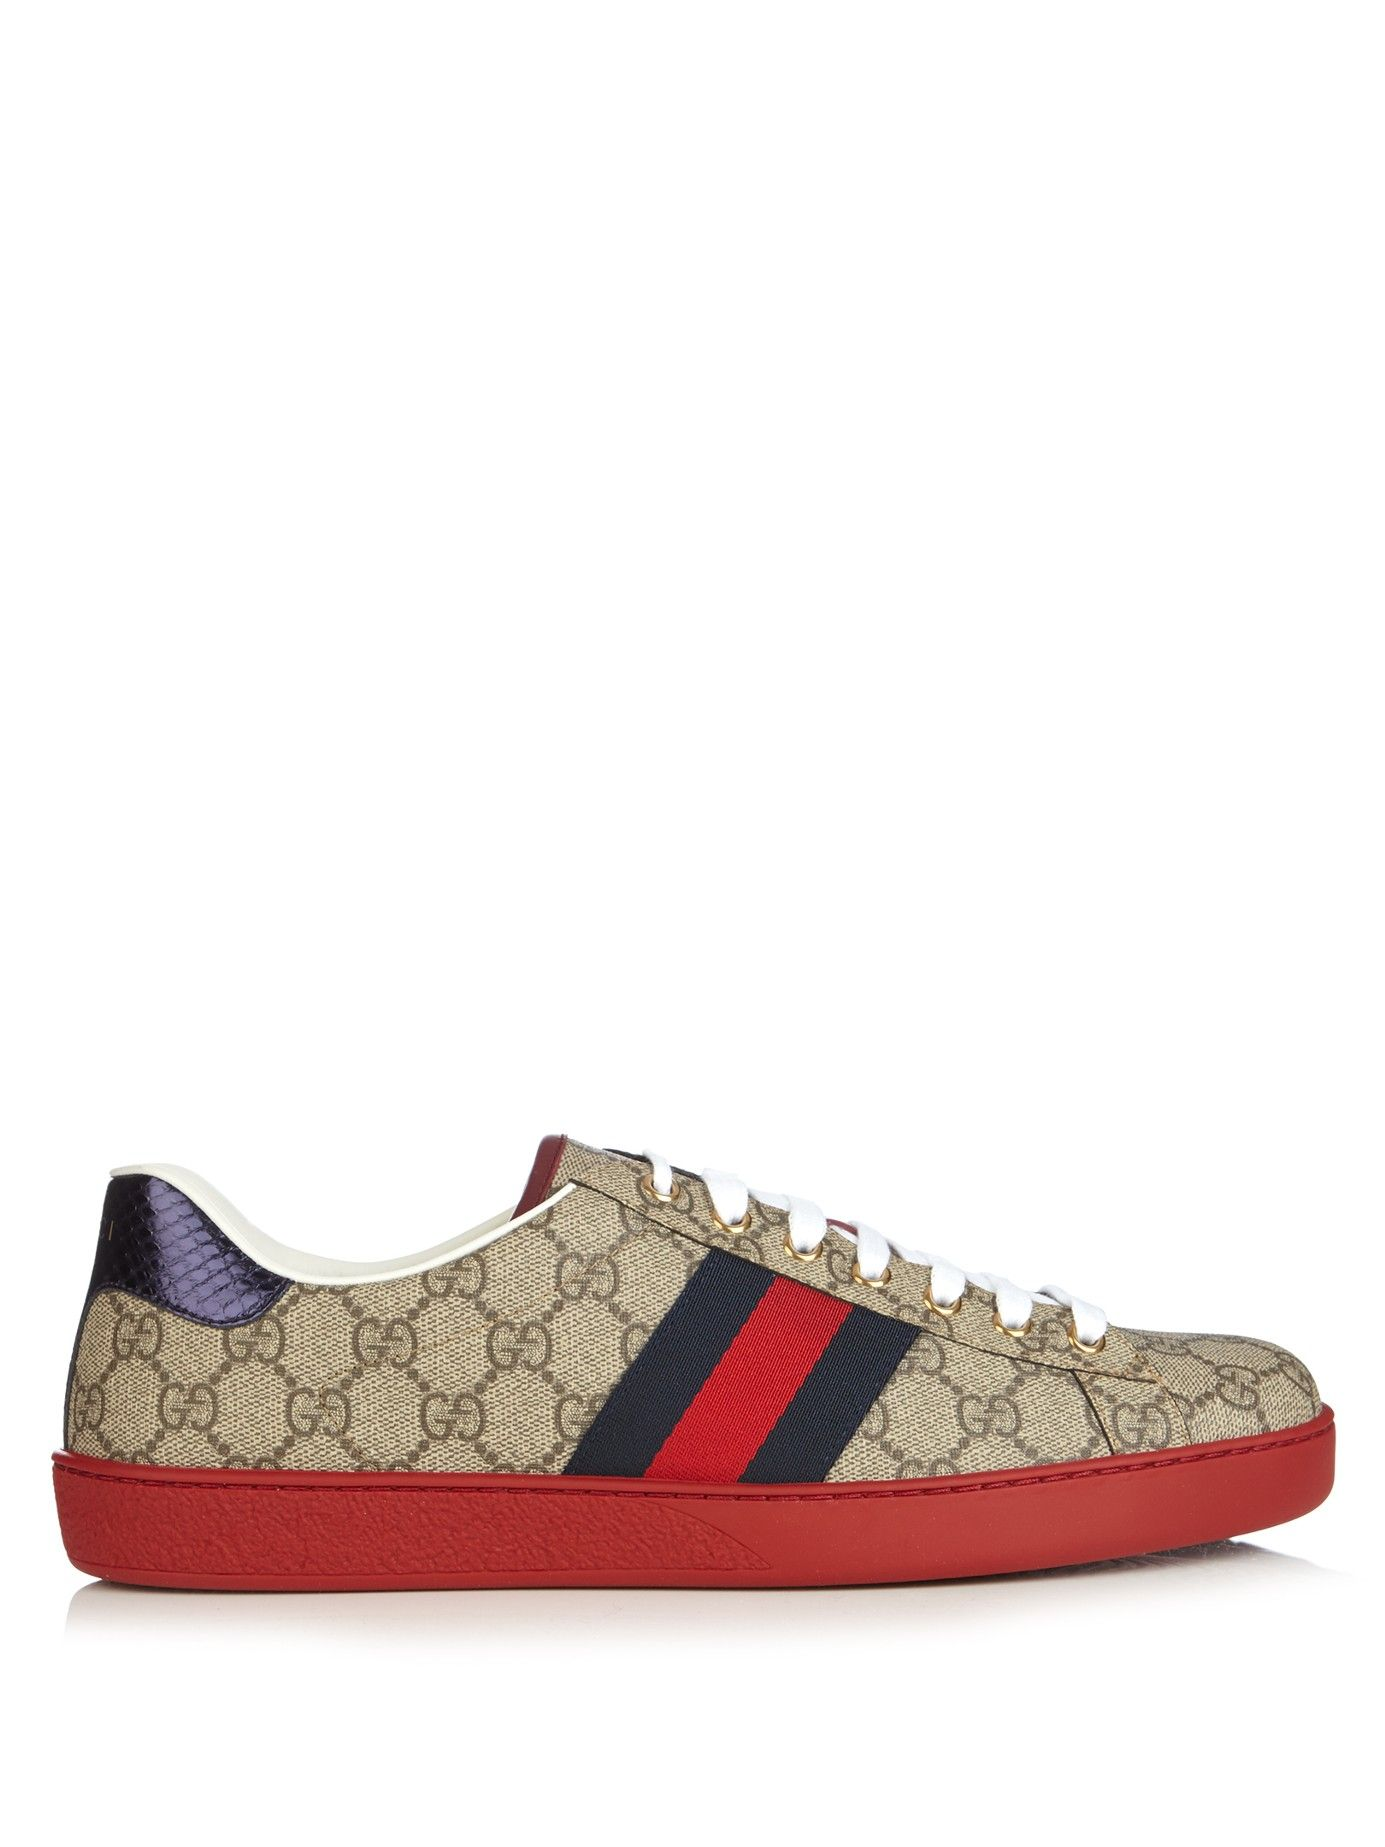 289bbc4da40 Ace GG Supreme low-top trainers